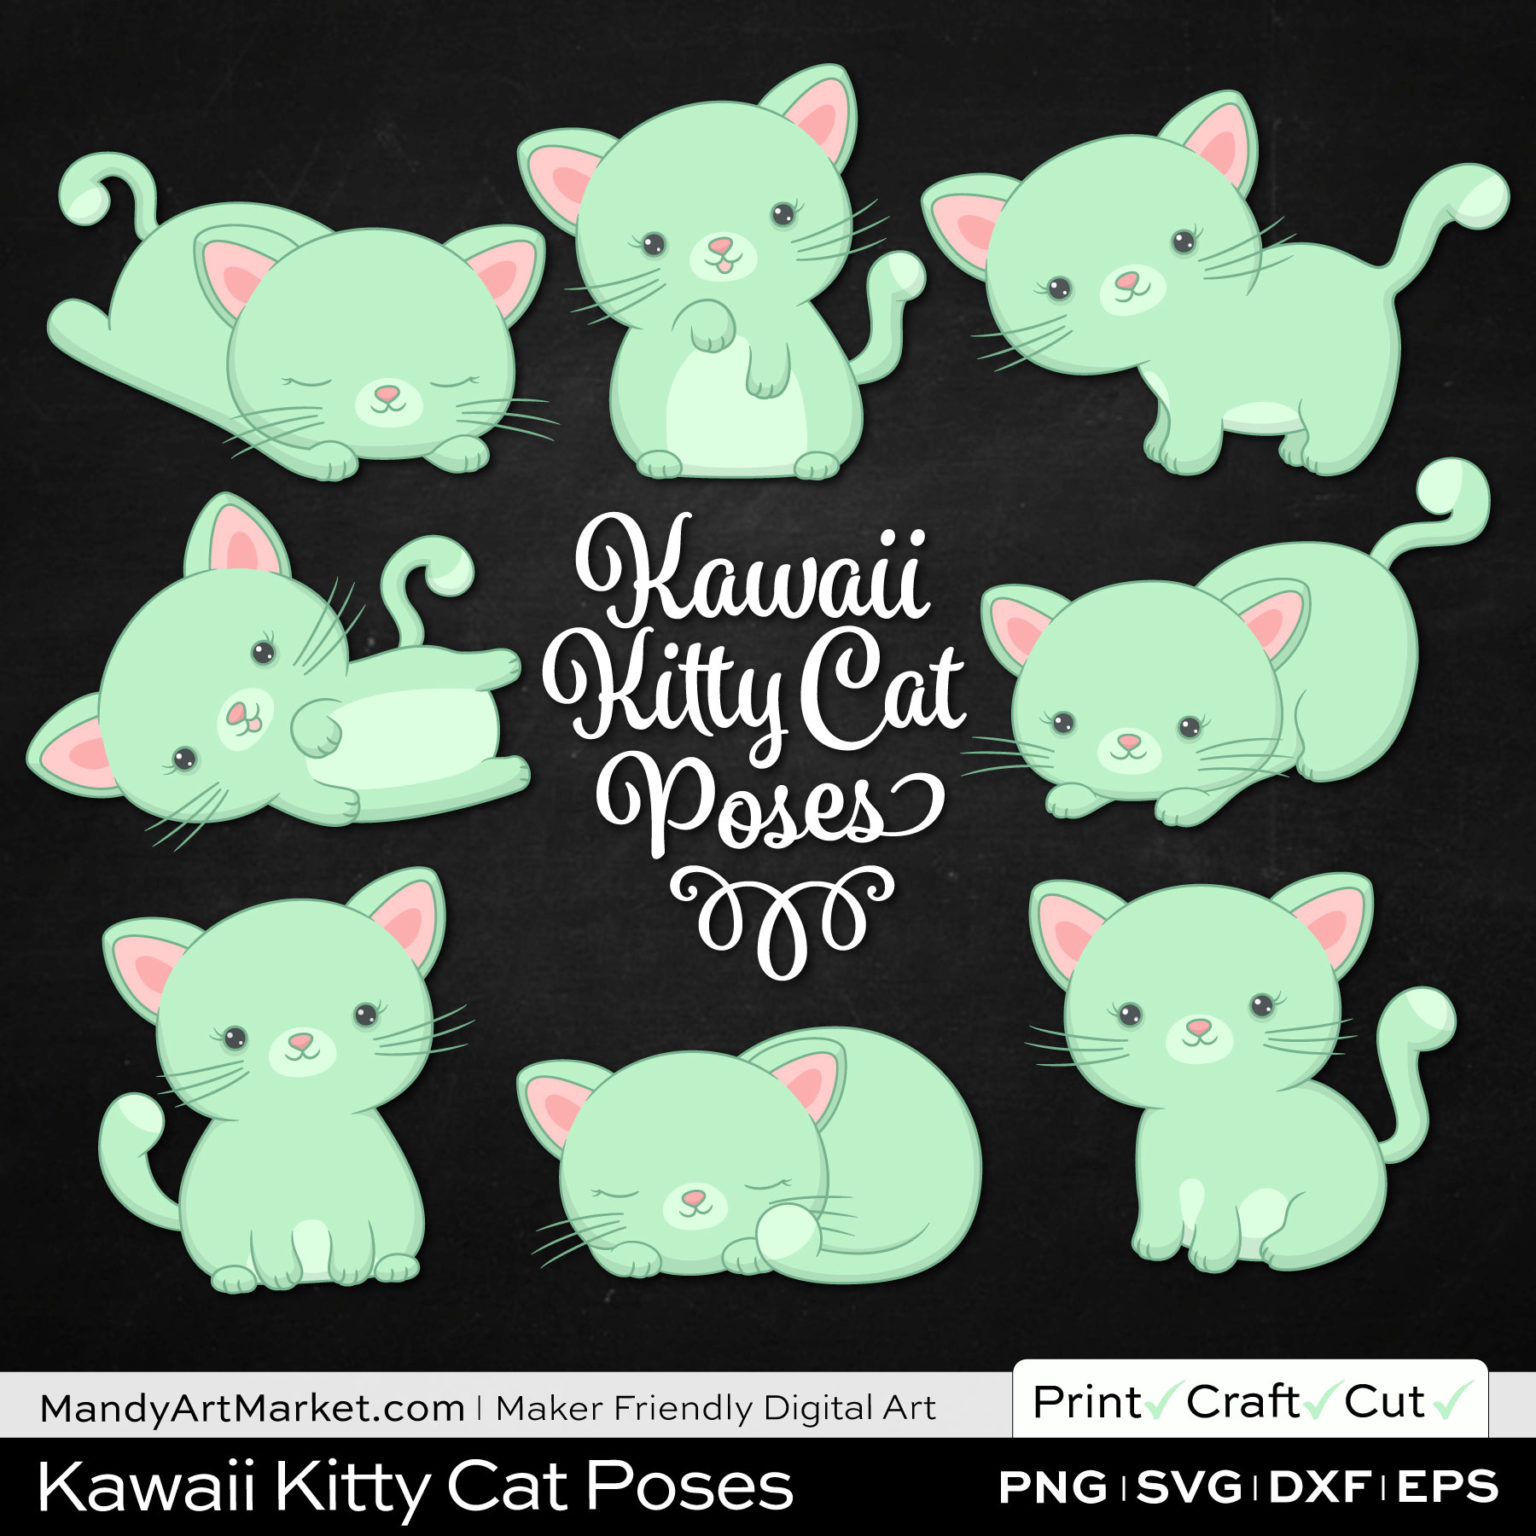 Mint Green Kawaii Kitty Cat Poses Clipart on Black Background